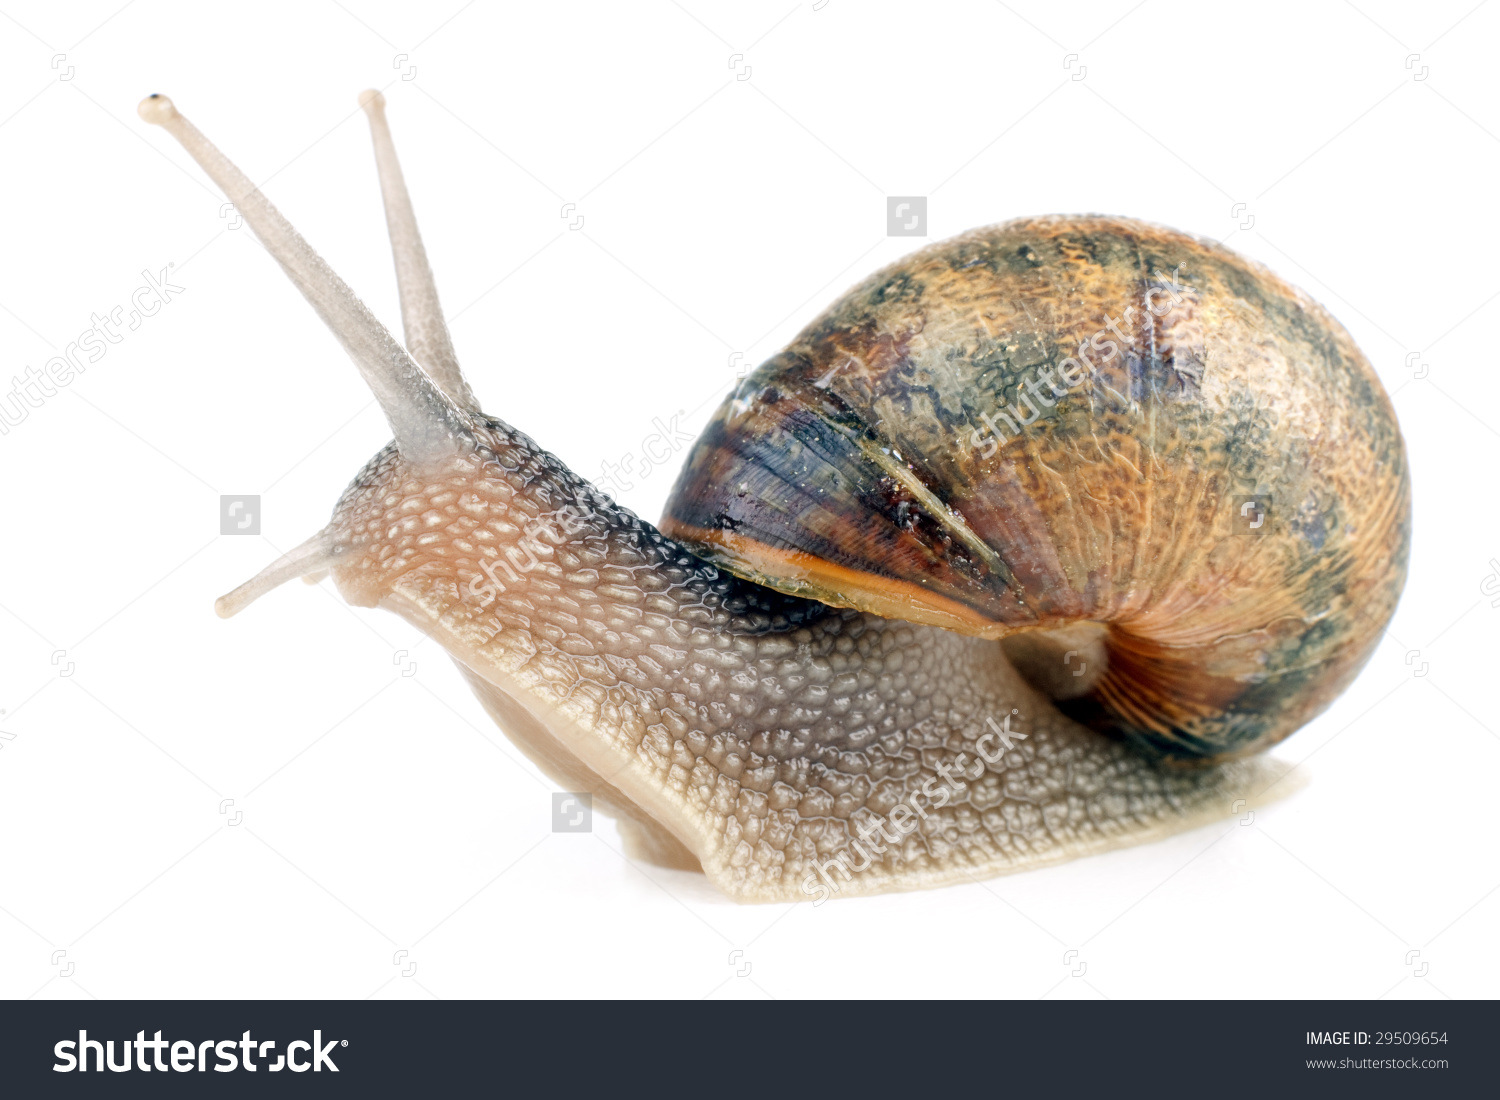 Common European Snail Helix Aspersa Isolated On White Background.